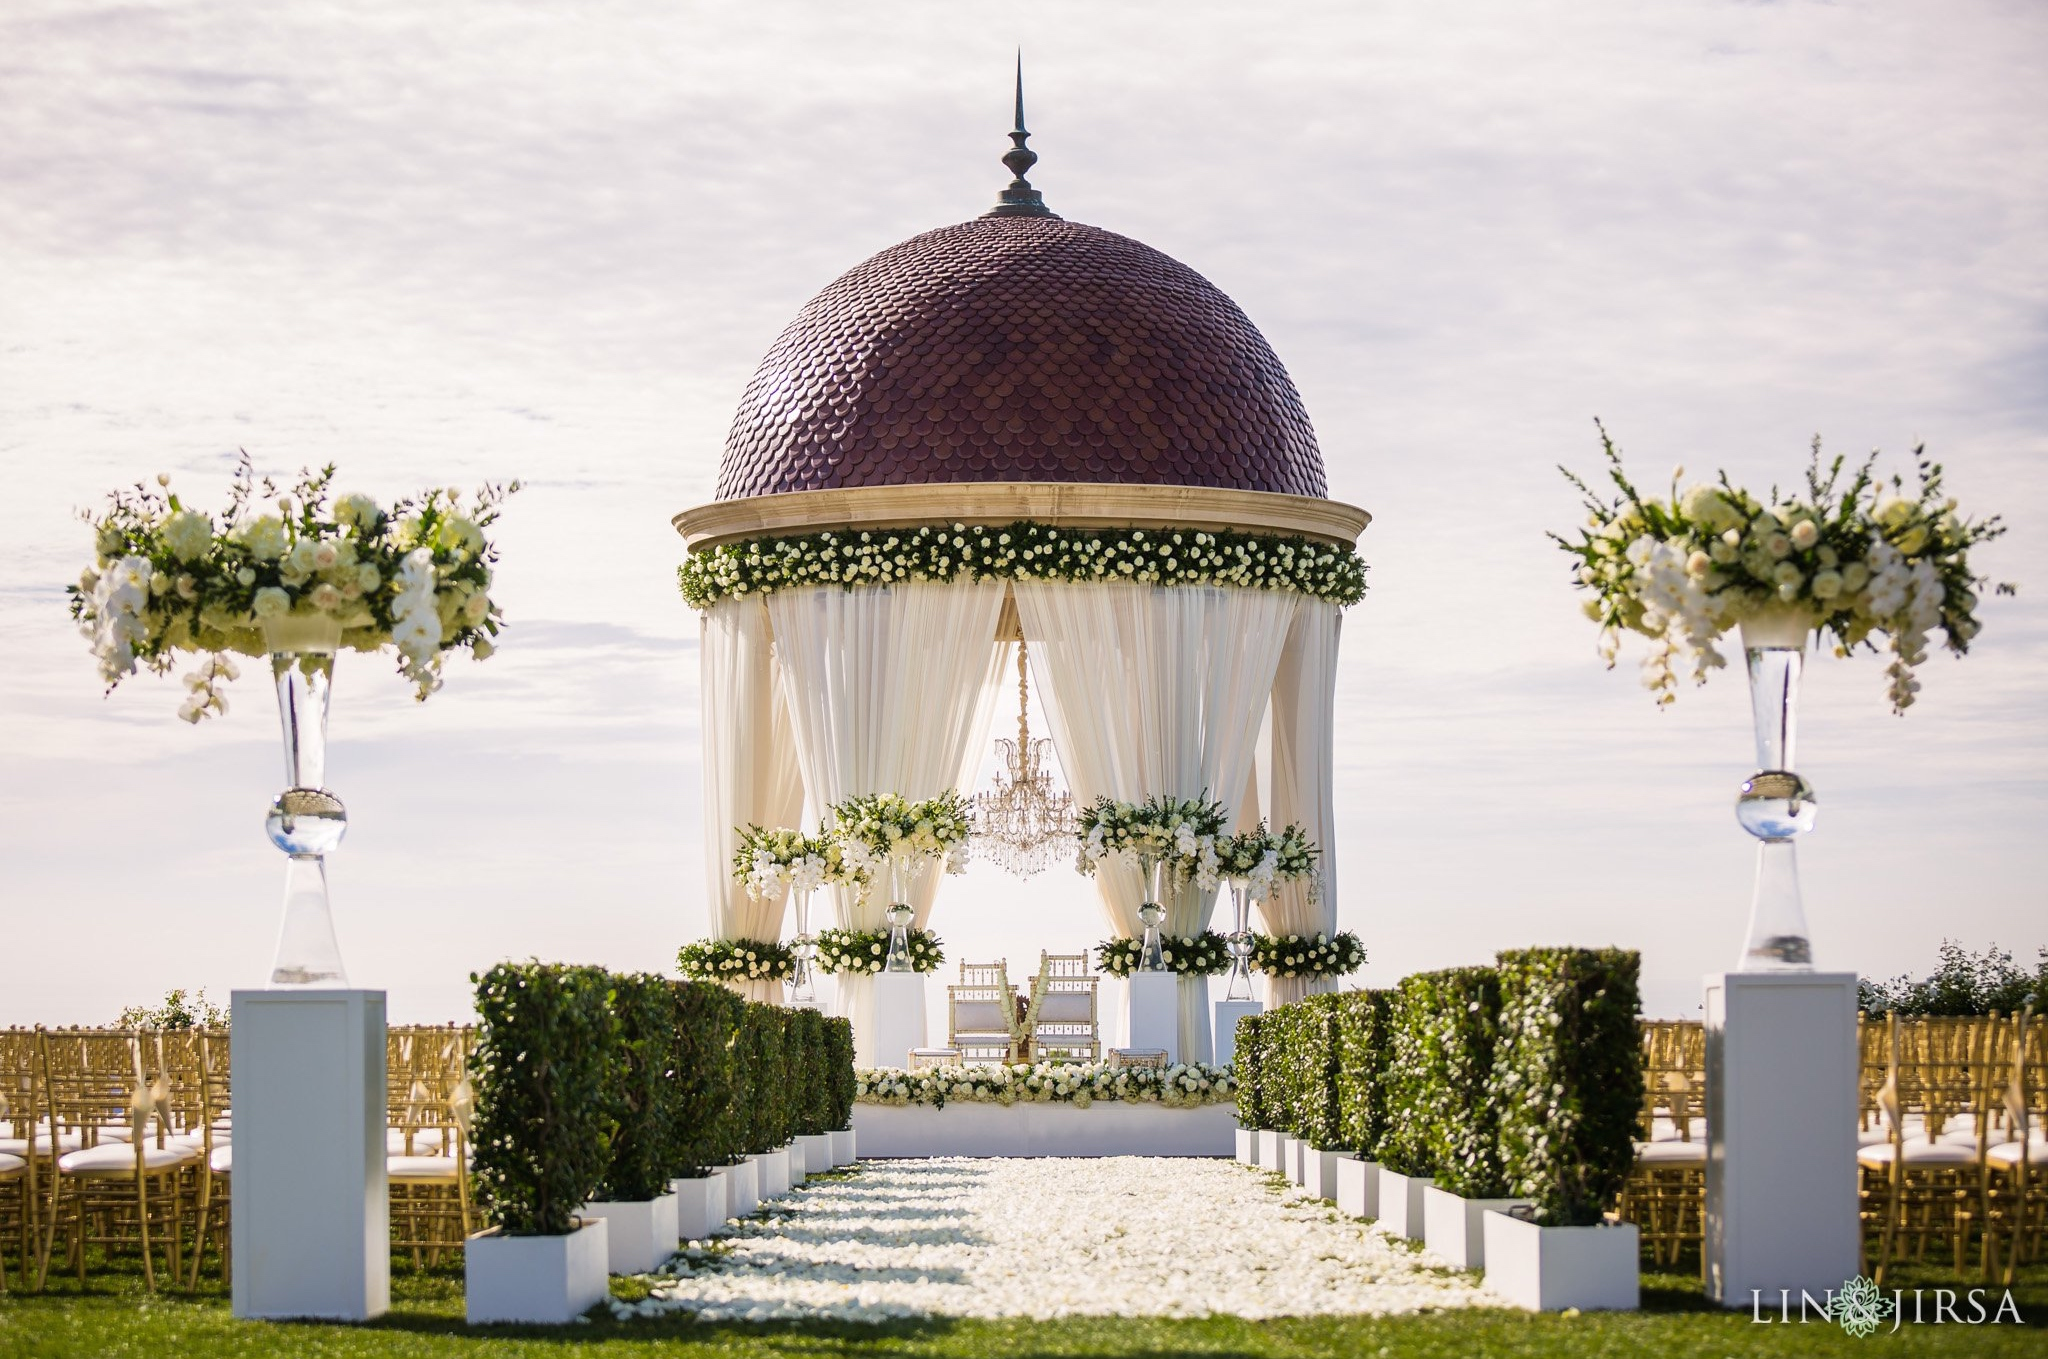 The 5 Step Guide to Planning a Modern Wedding -Lin & Jirsa - The Maharani Diaries